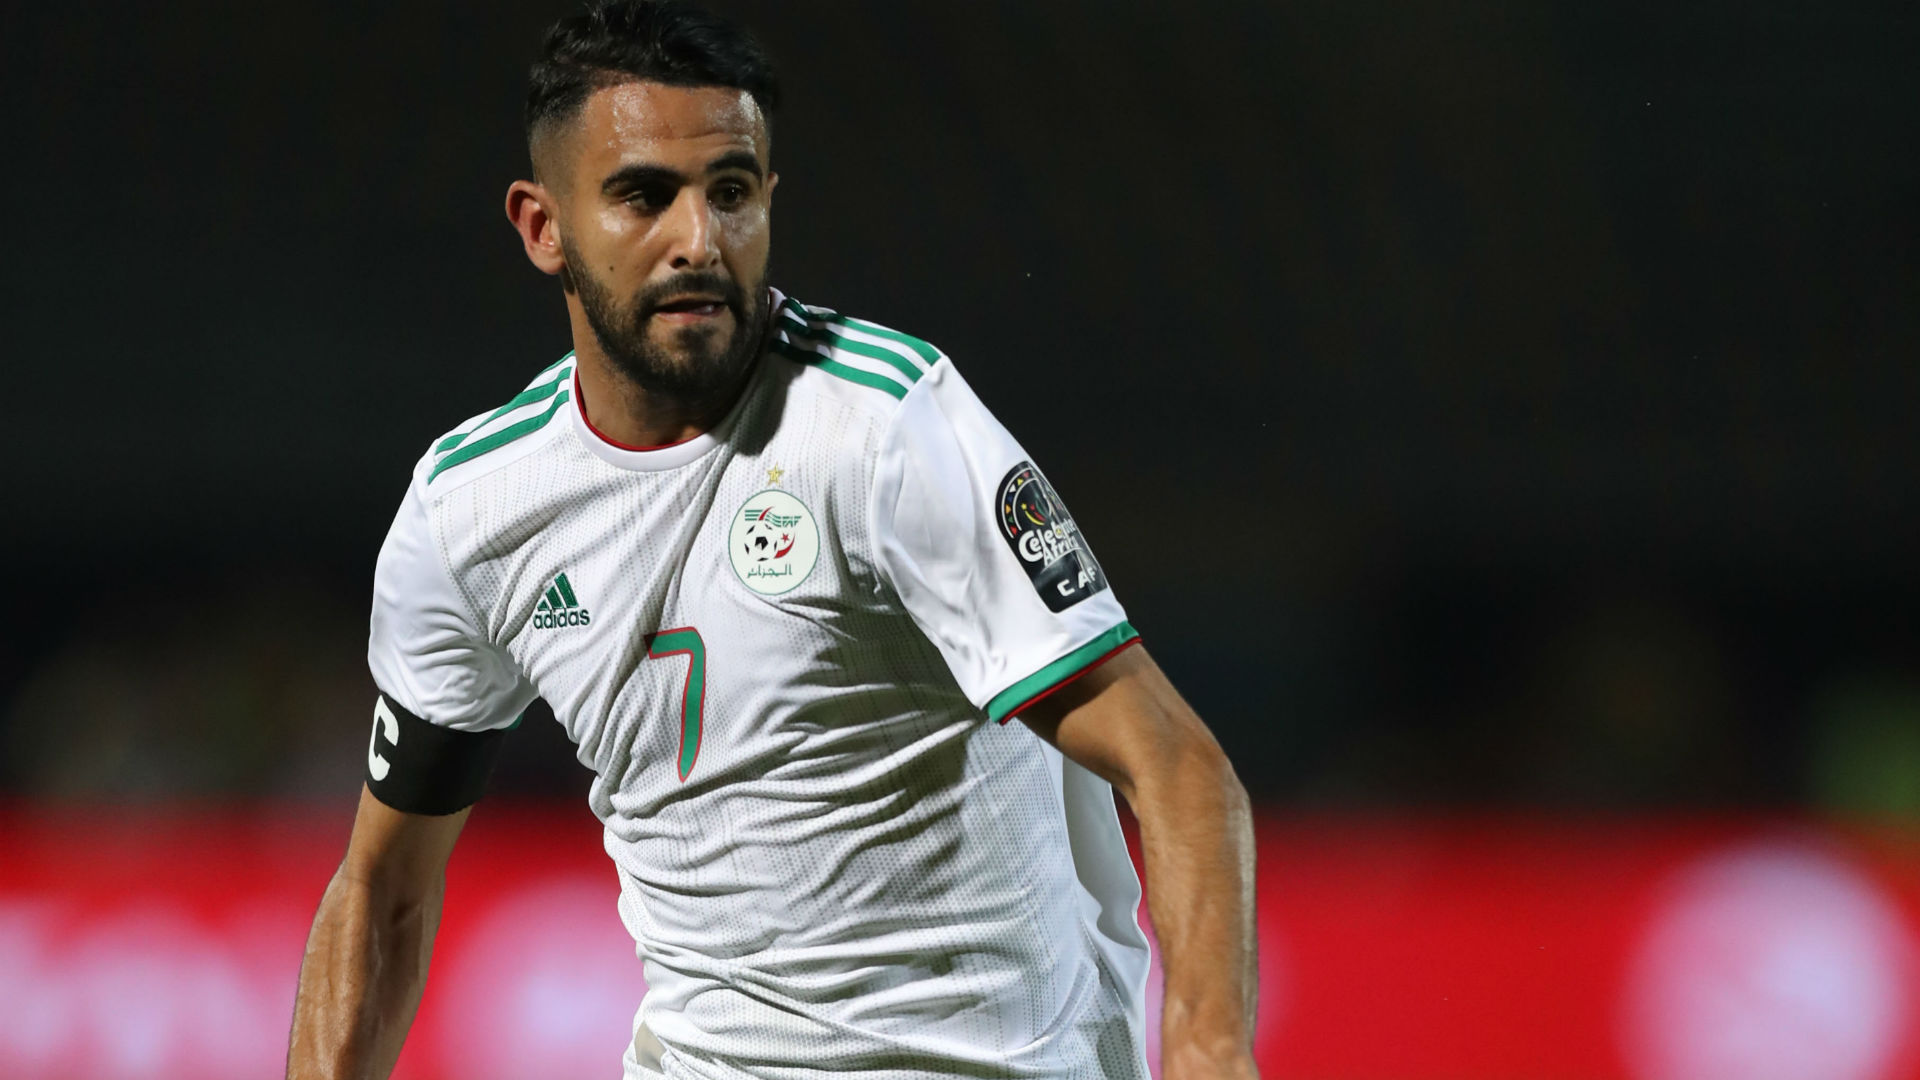 Manchester City star Mahrez opts out of Algeria's Afcon qualifier against Botswana